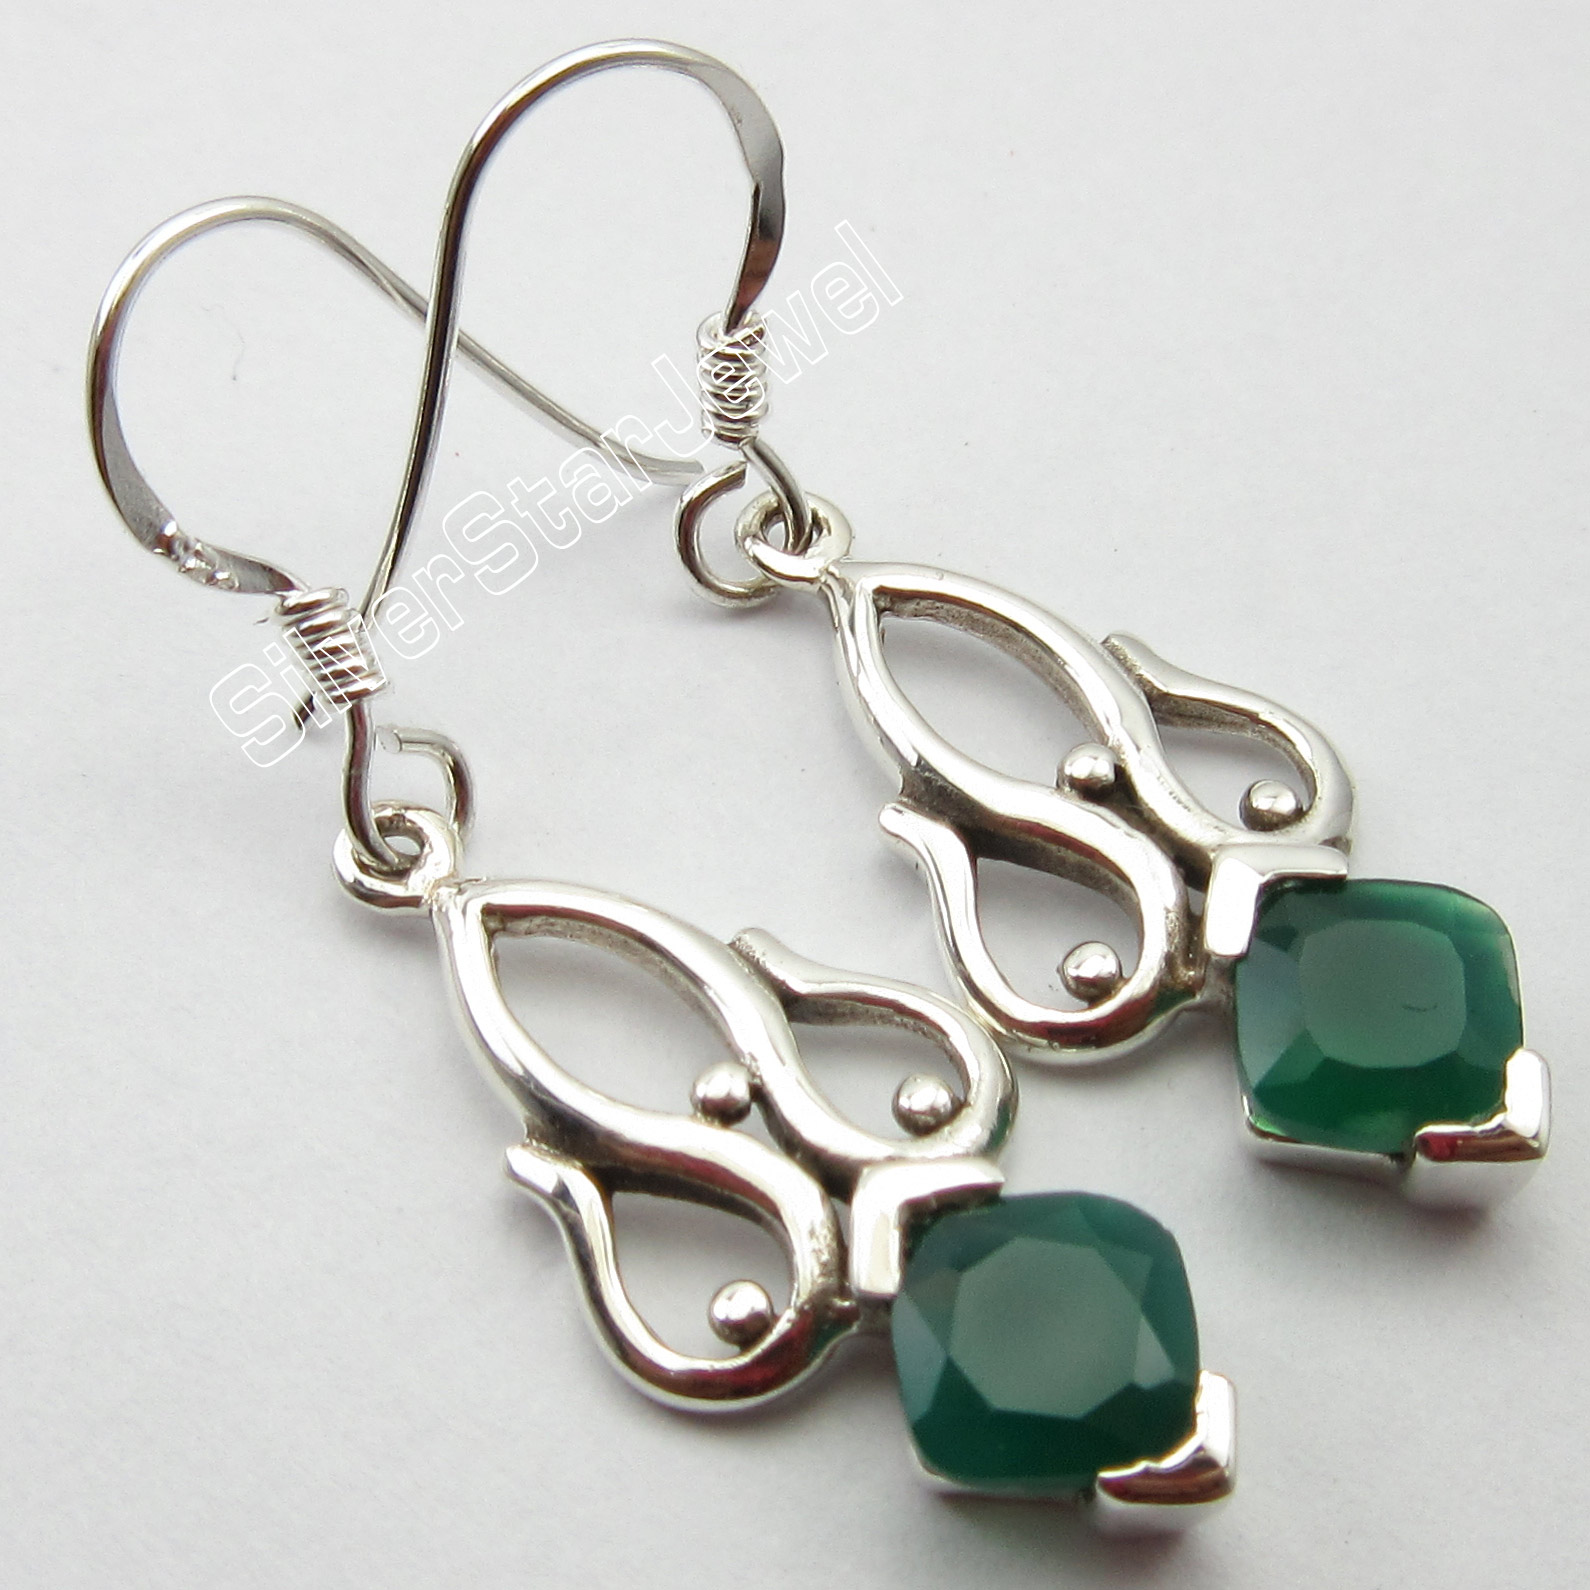 Chanti International Faceted GREEN ONYX Gem 92 5 Pure Silver FRENCH WIRE Earrings 3 9 CM